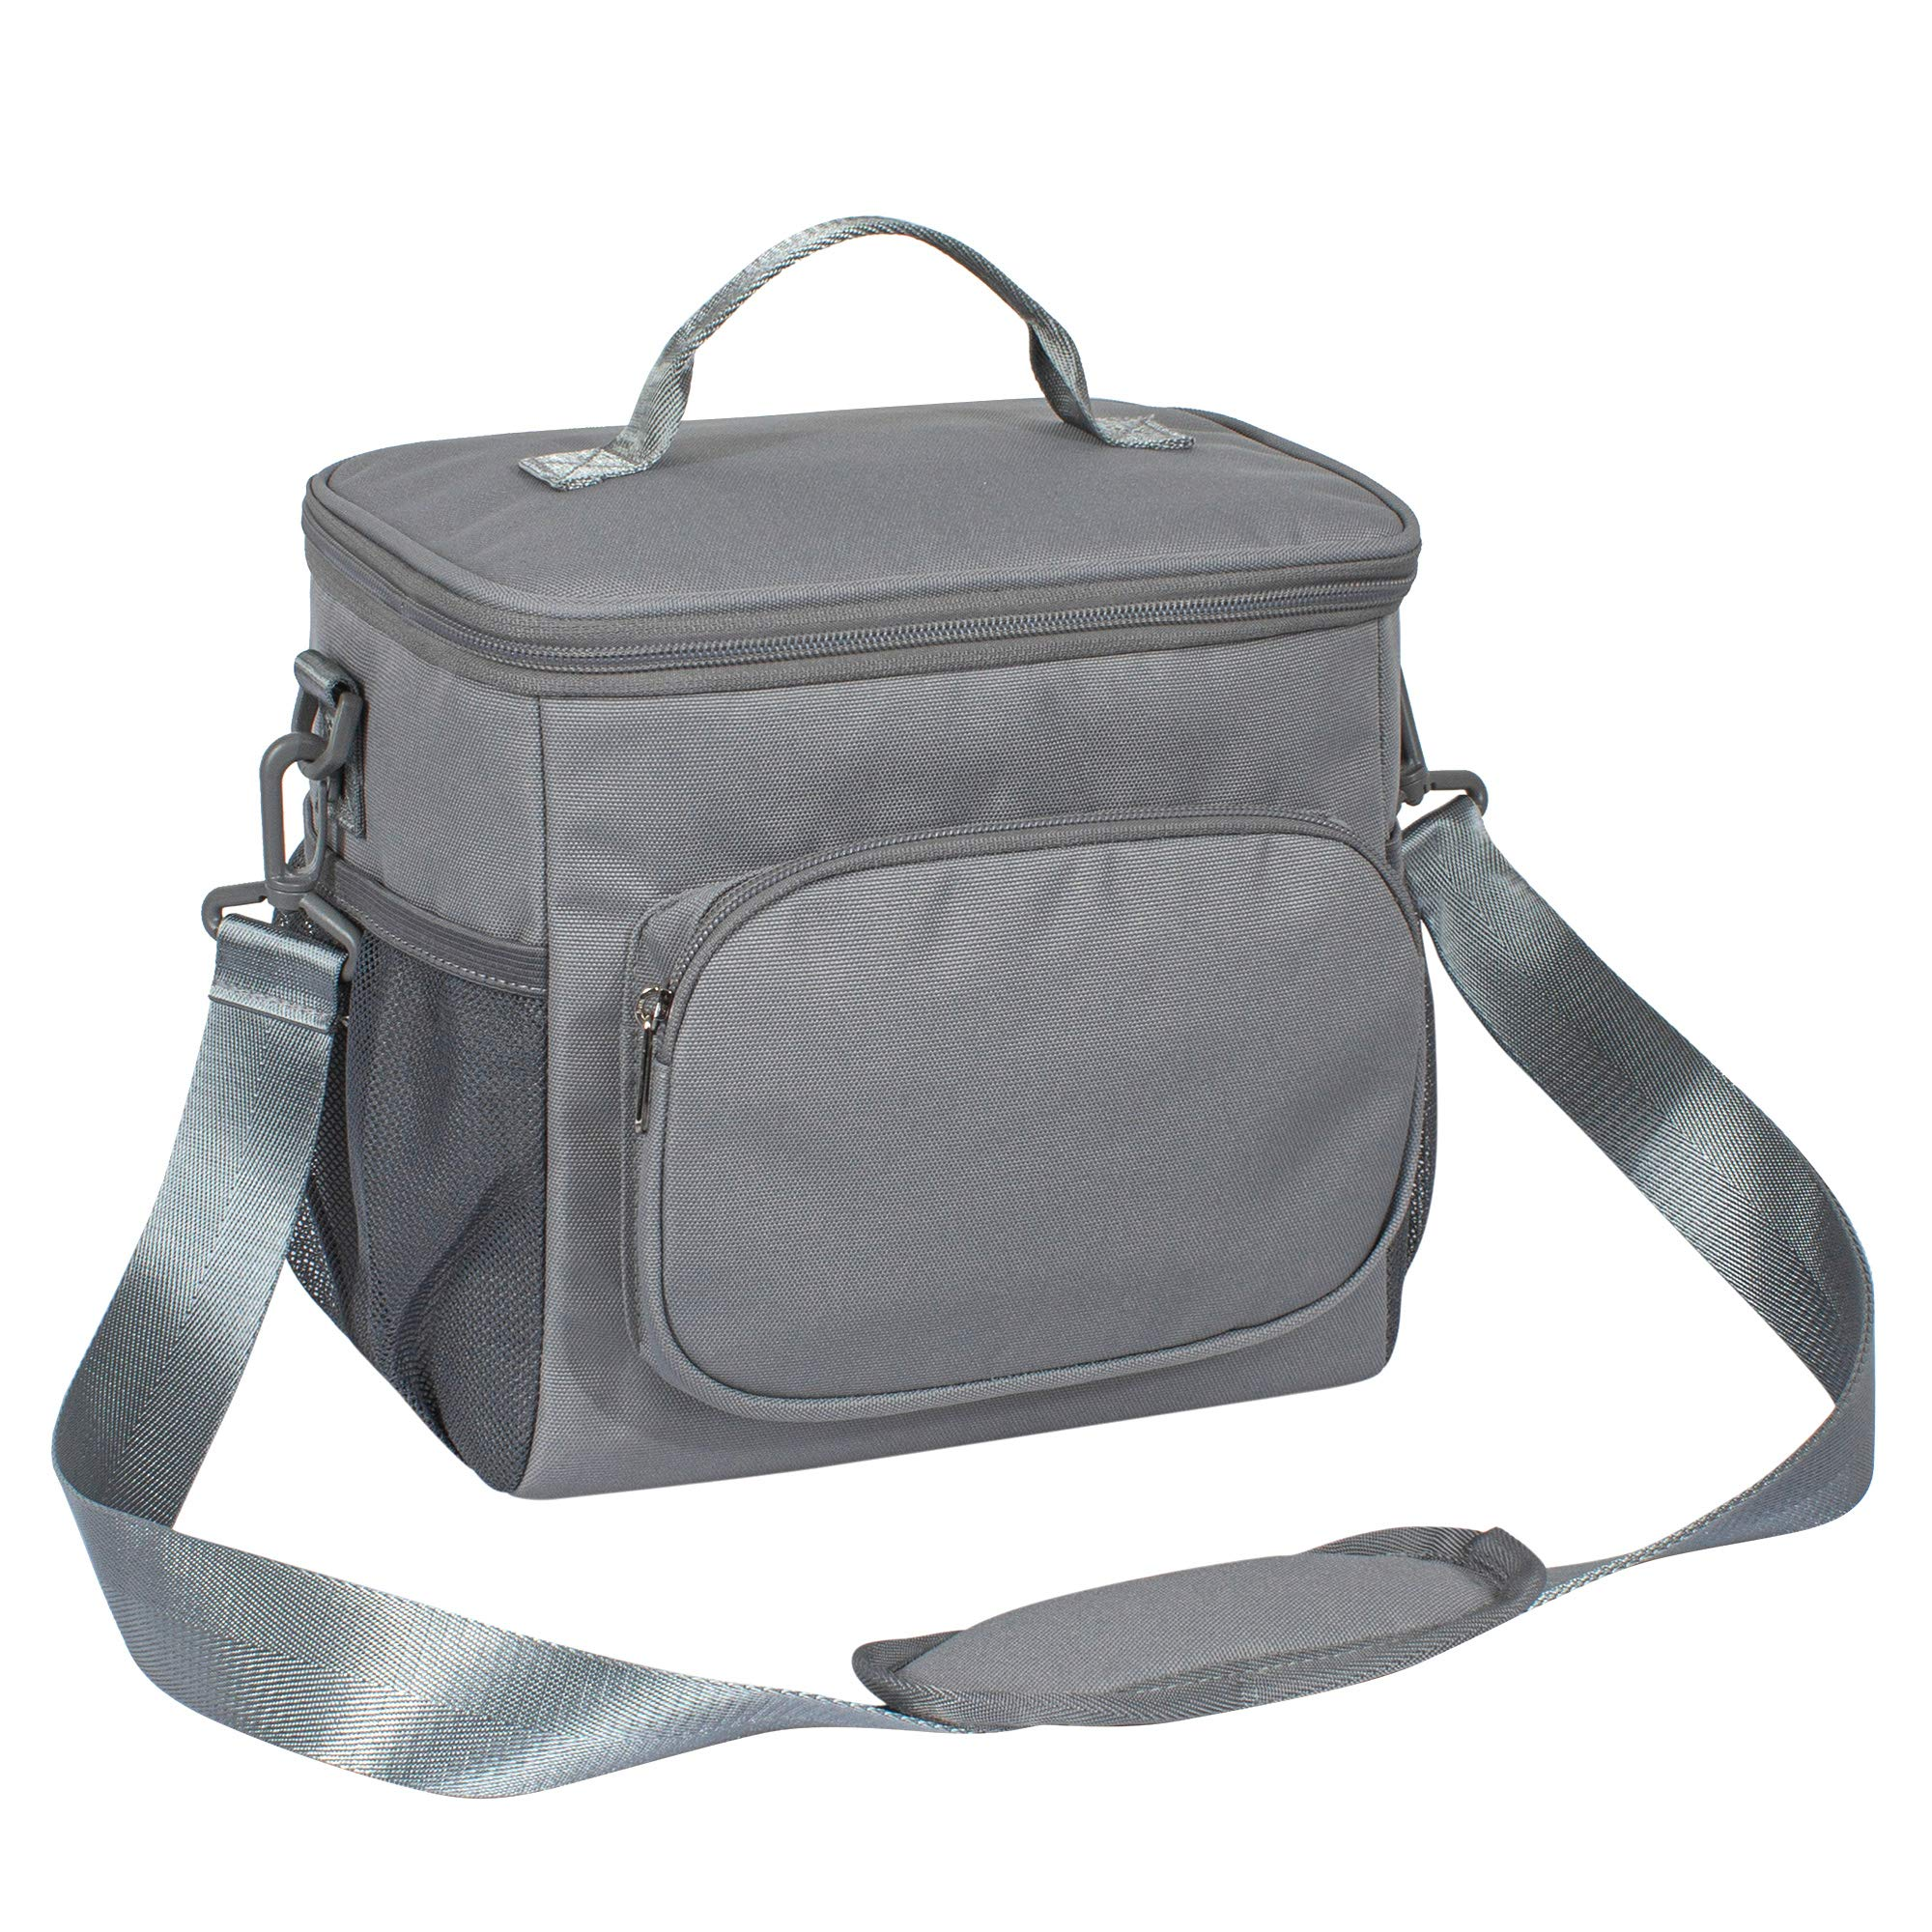 TOPERIN Lunch Box Insulated Lunch Bag for Men, Women Lunch Tote Bag Gray